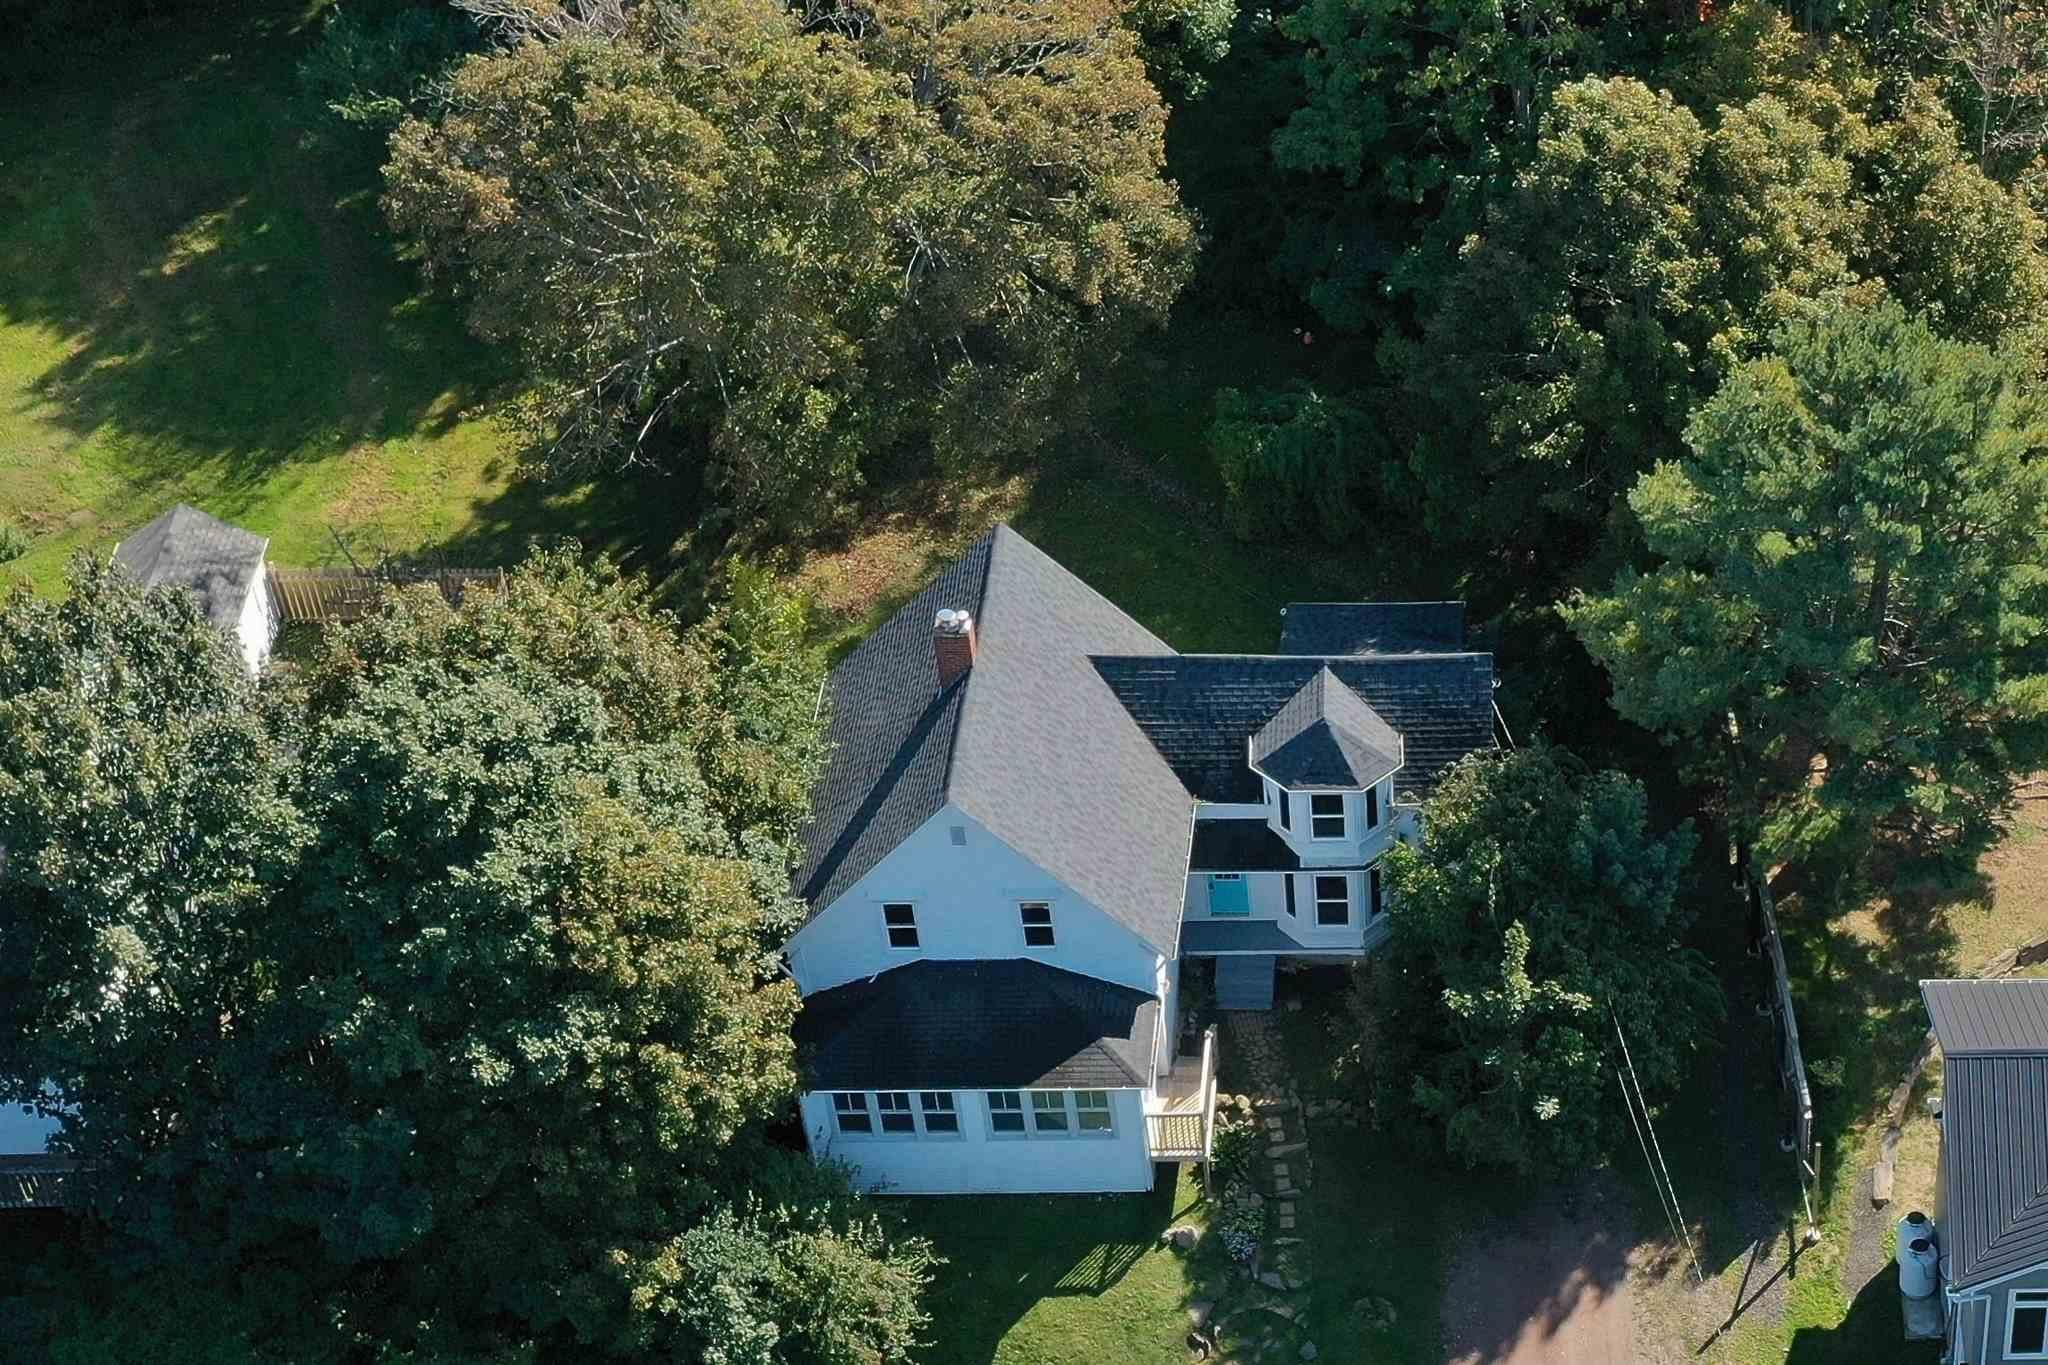 Main Photo: 14 EAST OLD POST Road in Smiths Cove: 401-Digby County Residential for sale (Annapolis Valley)  : MLS®# 202125582